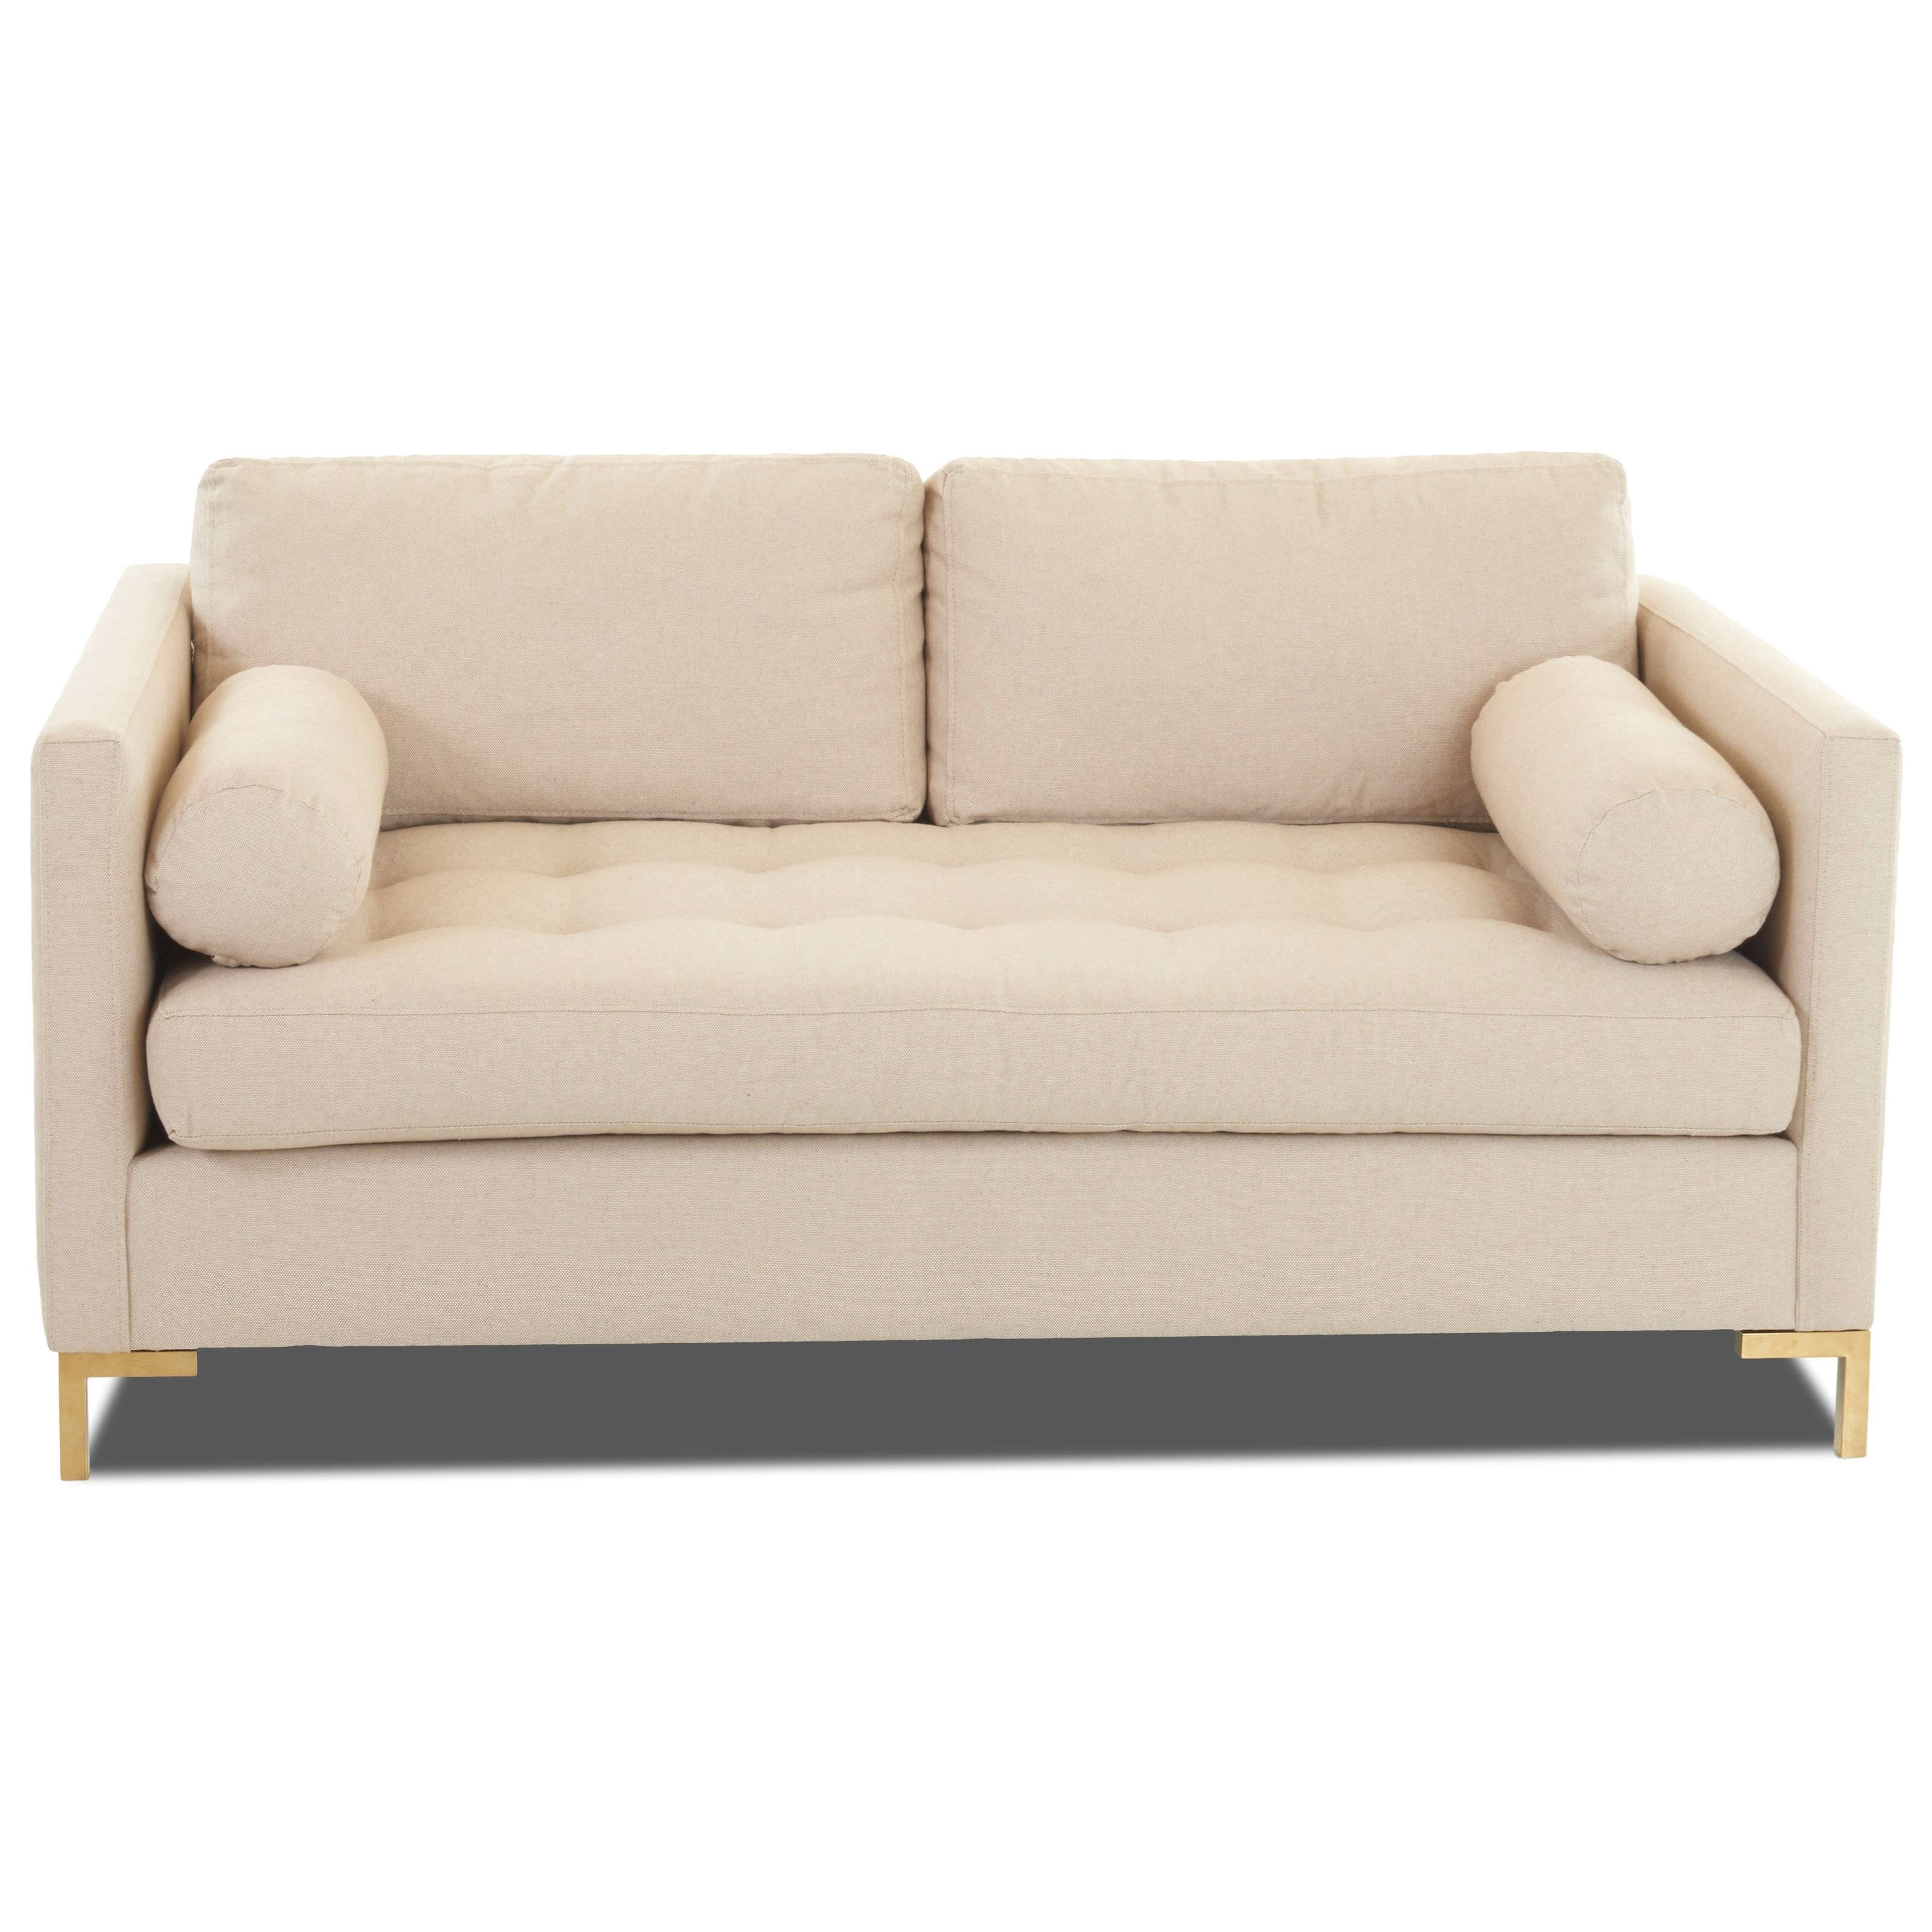 Klaussner Contemporary Love Seat